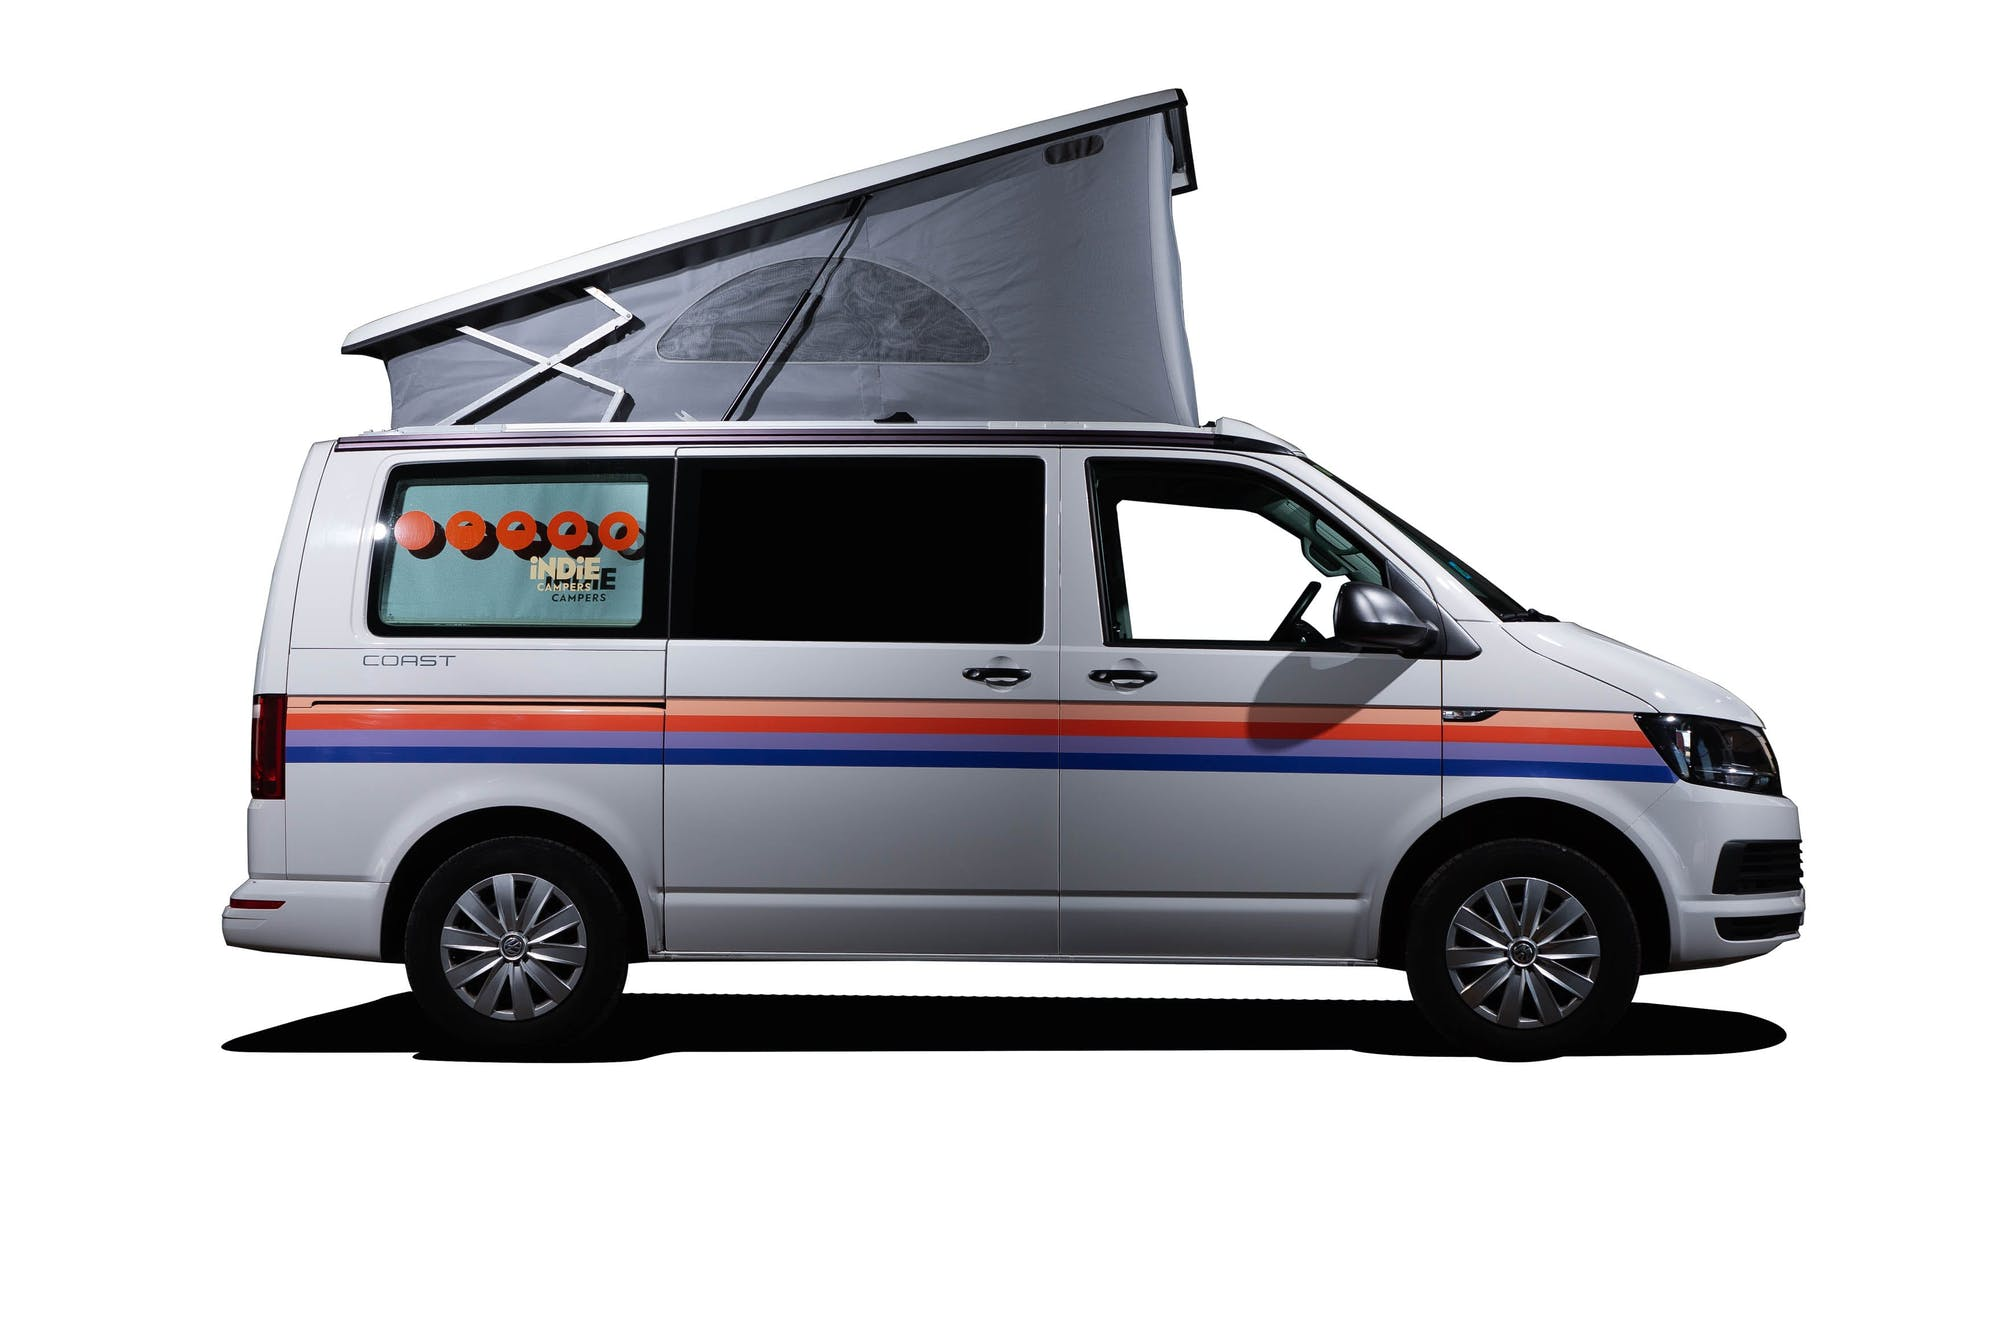 Side view of the VW California Model